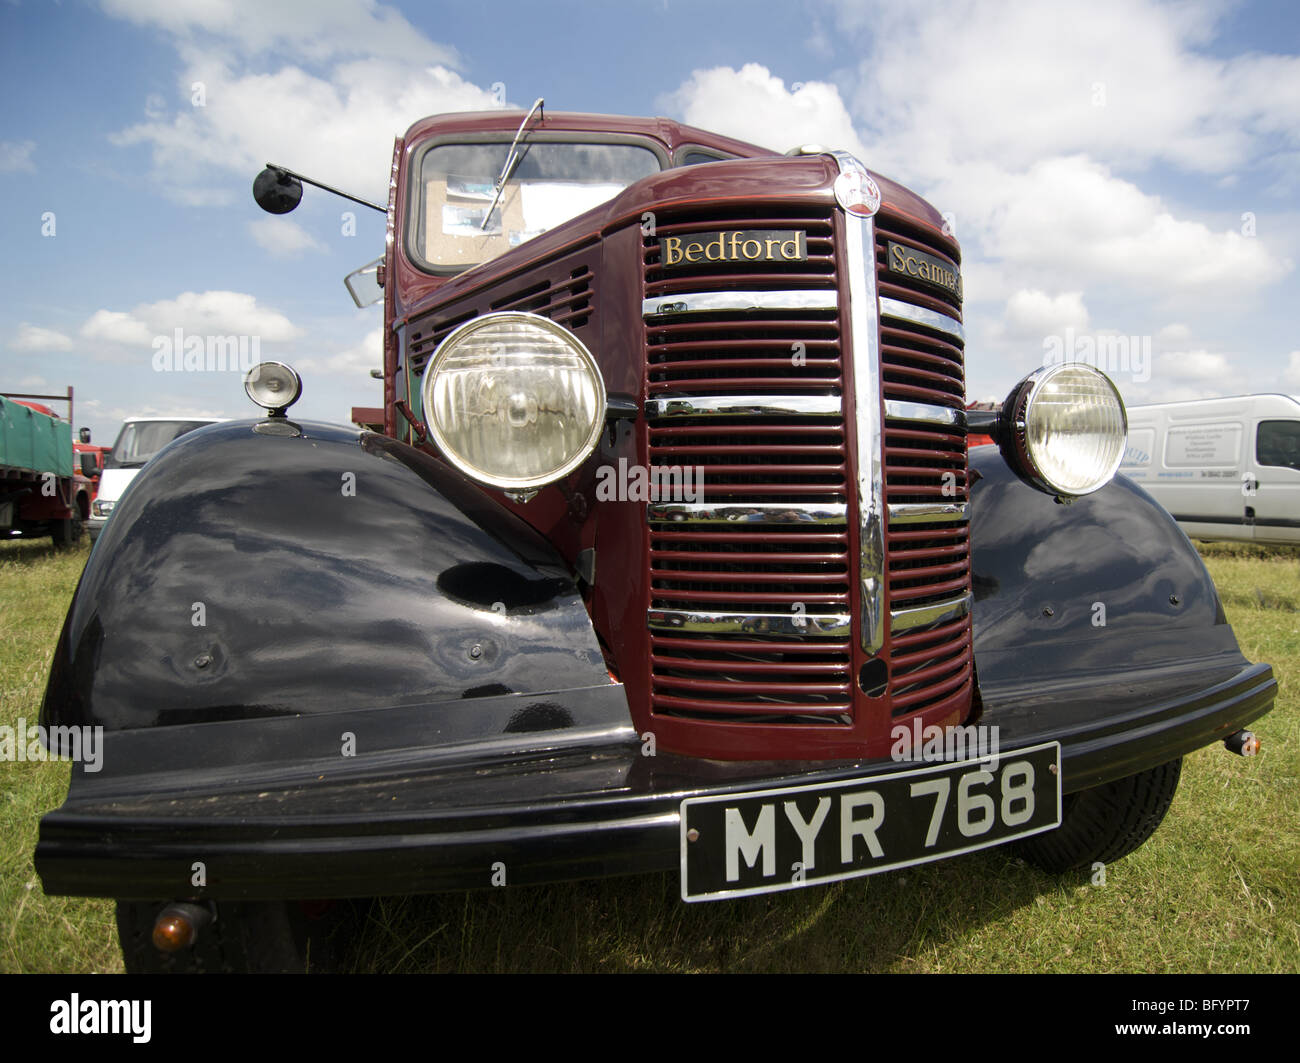 Wide angle shot of an maroon and black 1952 Bedford Scammell seen in 2009 at the Hollowell Steam Rally - Stock Image